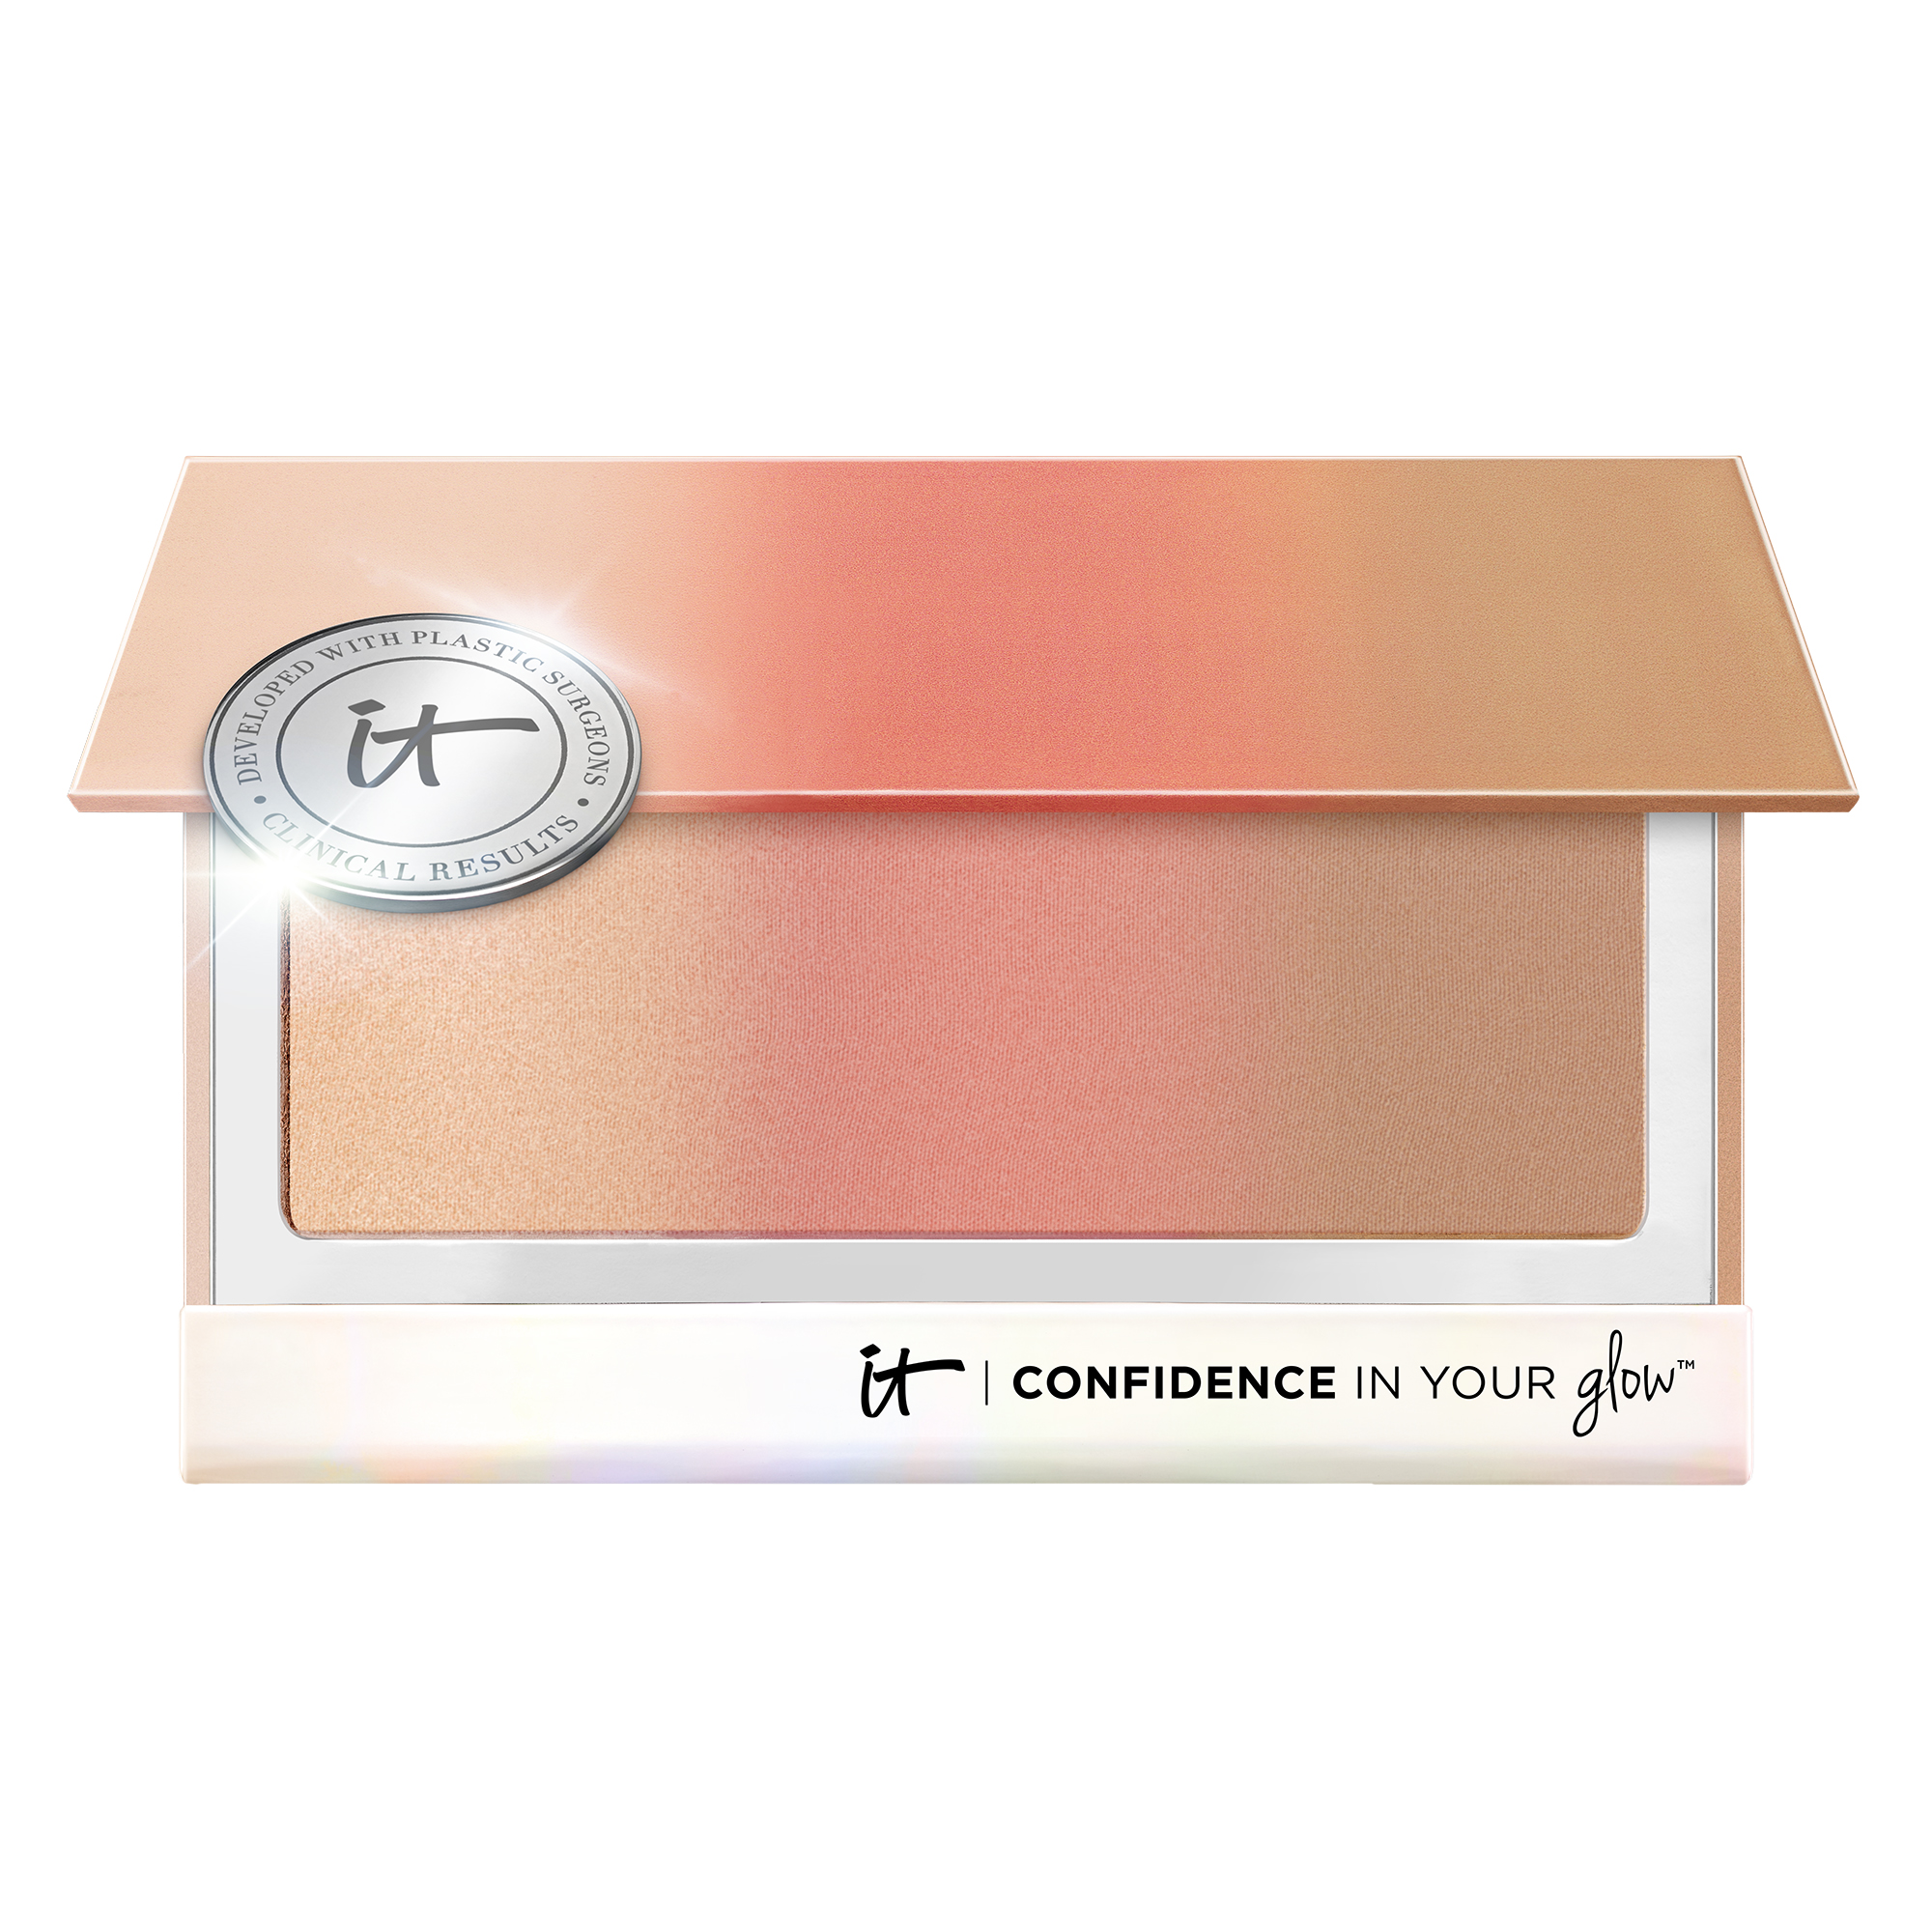 Confidence in Your Glow™ Blush Peach